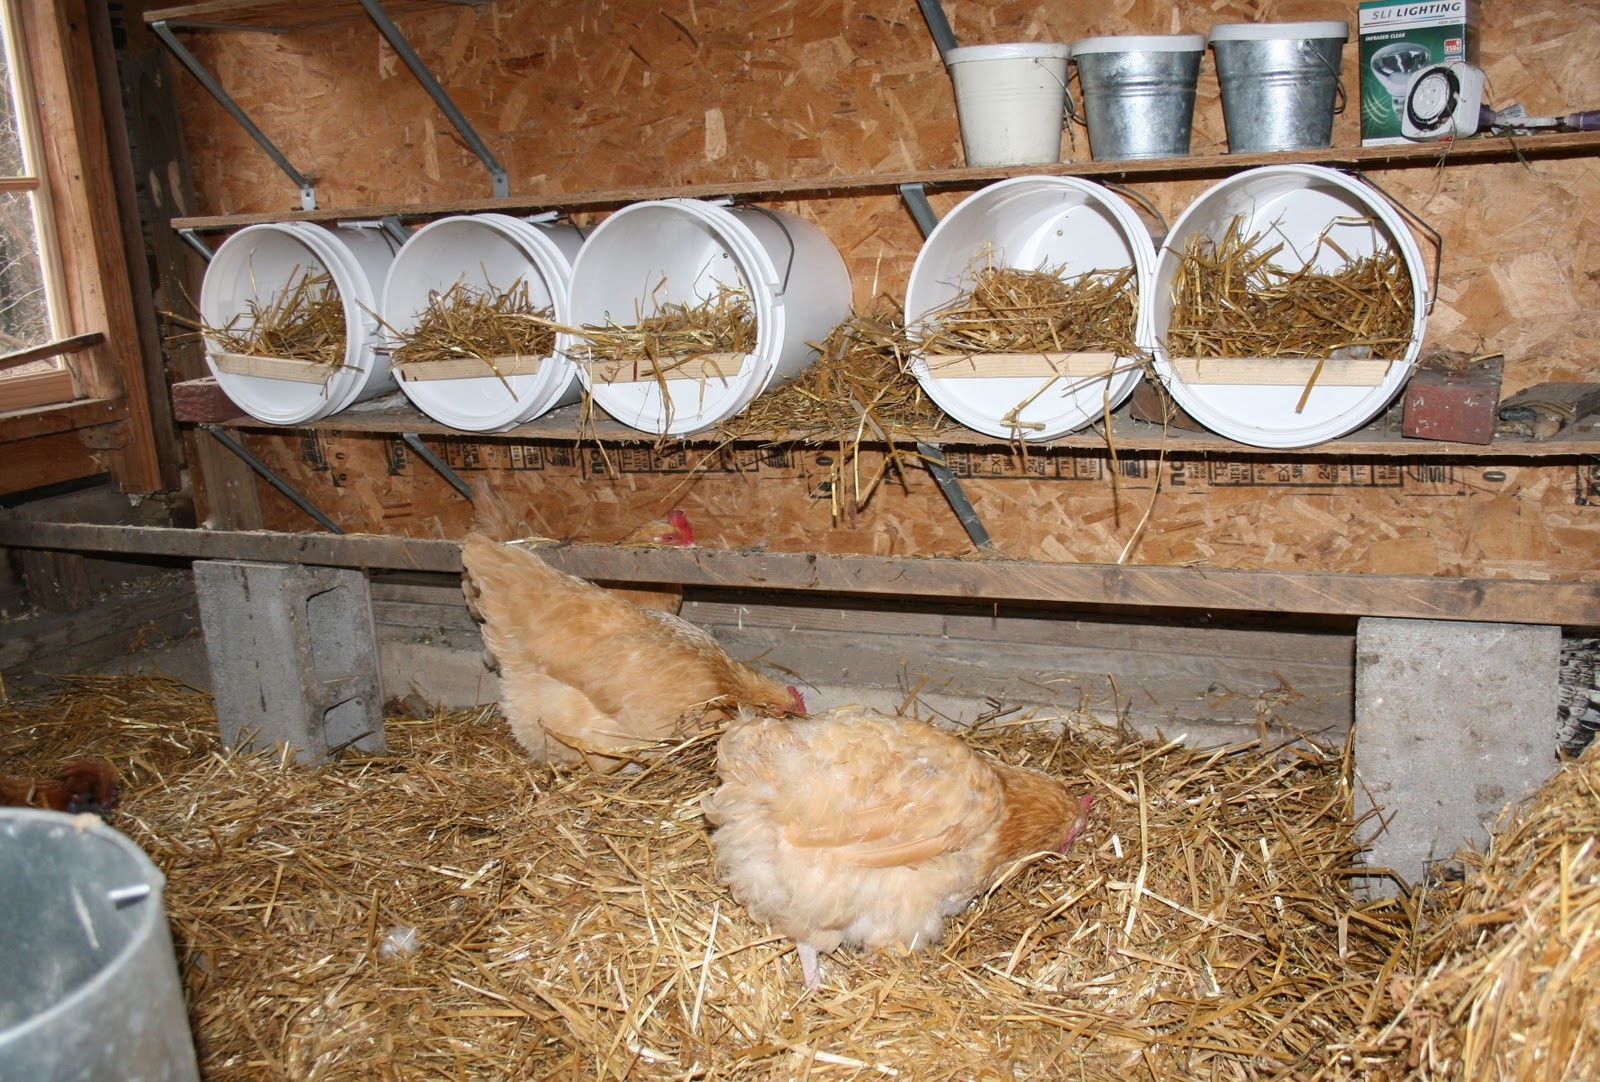 Best ideas about DIY Chicken Nest Boxes . Save or Pin Bucket o Chicken Now.